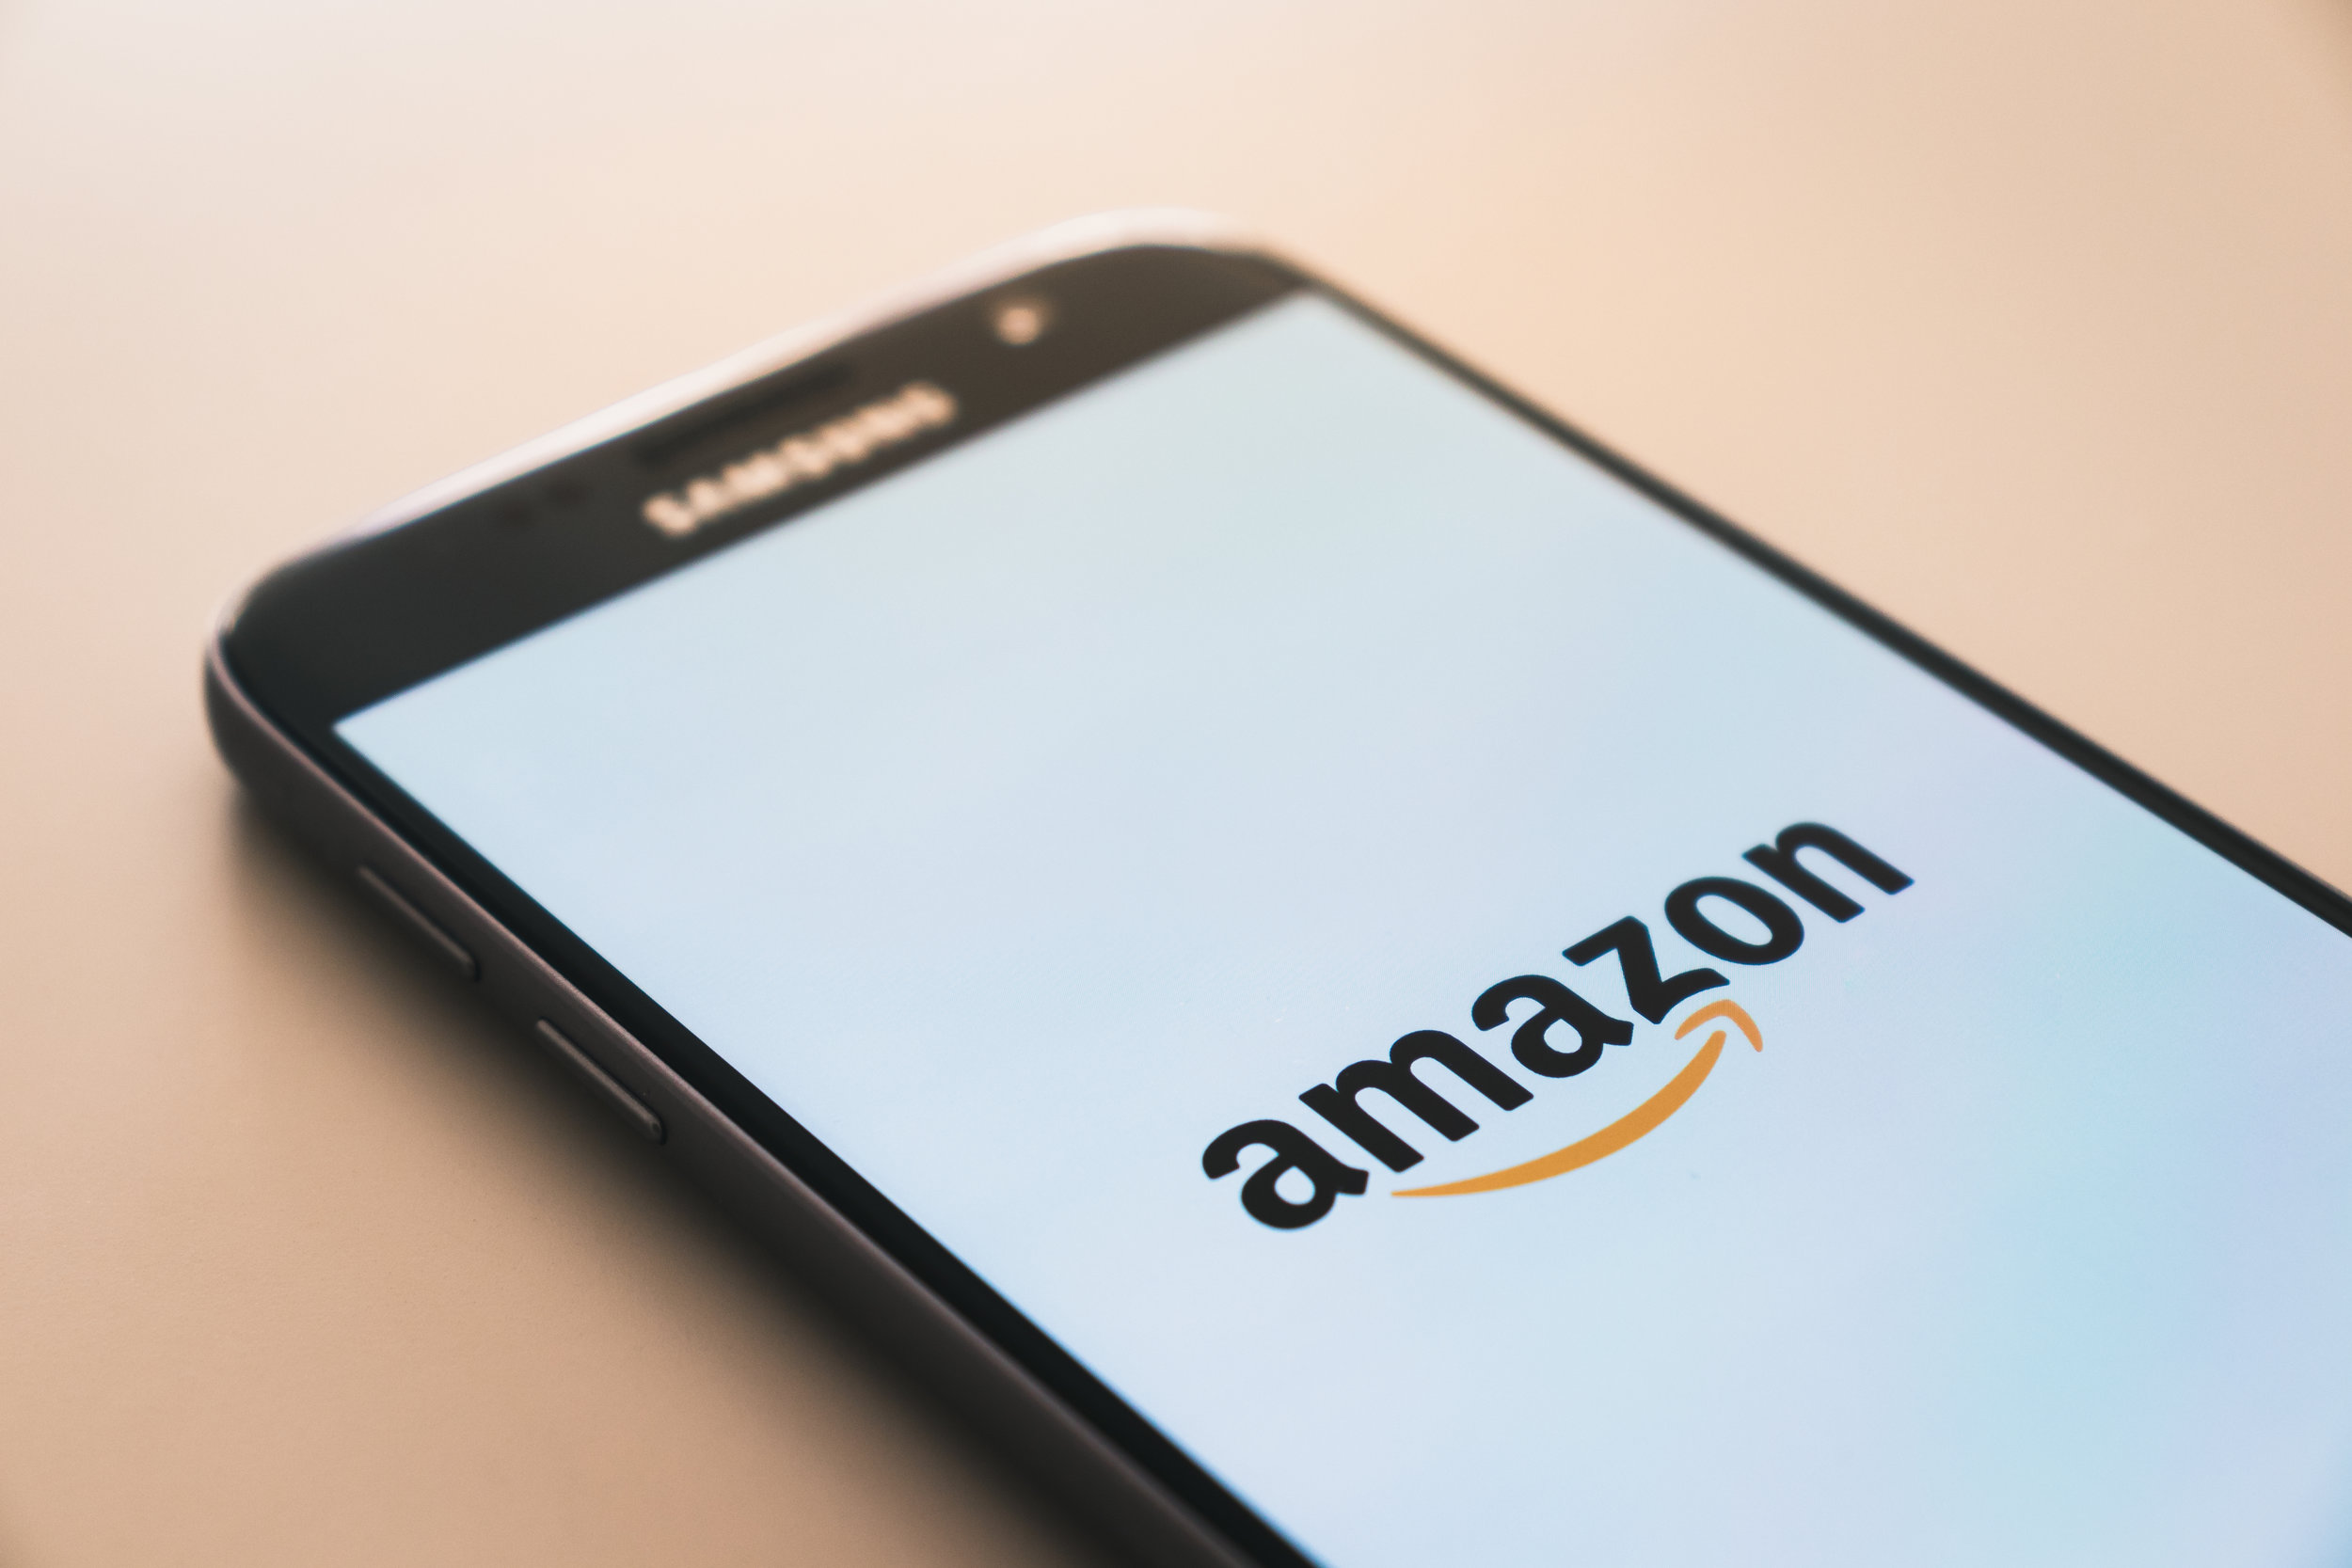 The launch of the amazon.com app